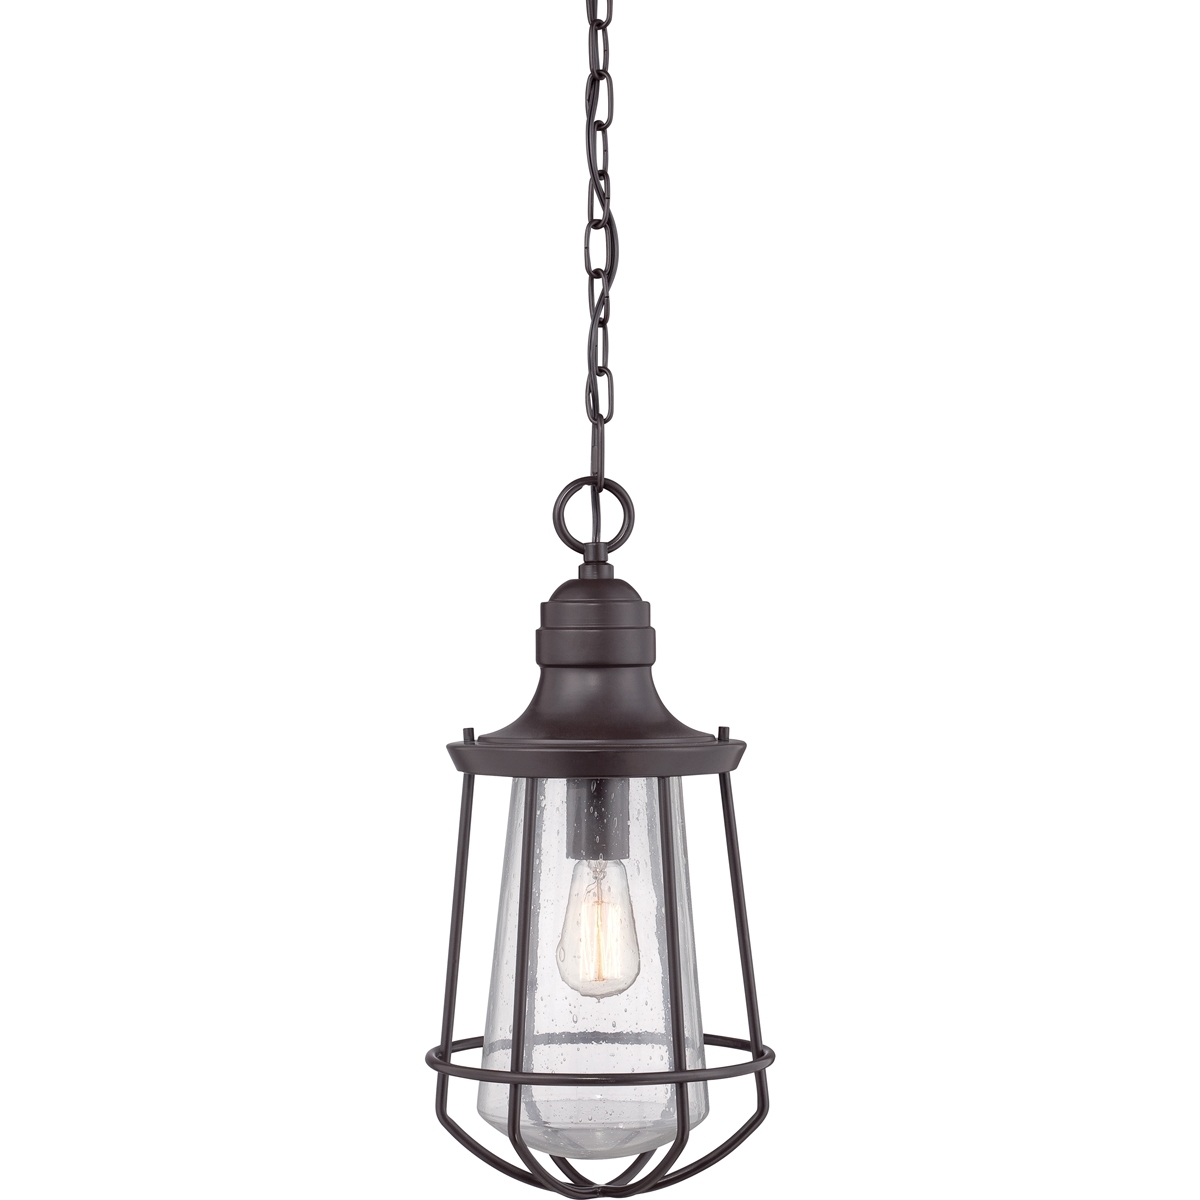 Most Popular Attractive Outdoor Hanging Light Fixtures Including Pendant Trends With Regard To Outdoor Hanging Light Pendants (View 16 of 20)